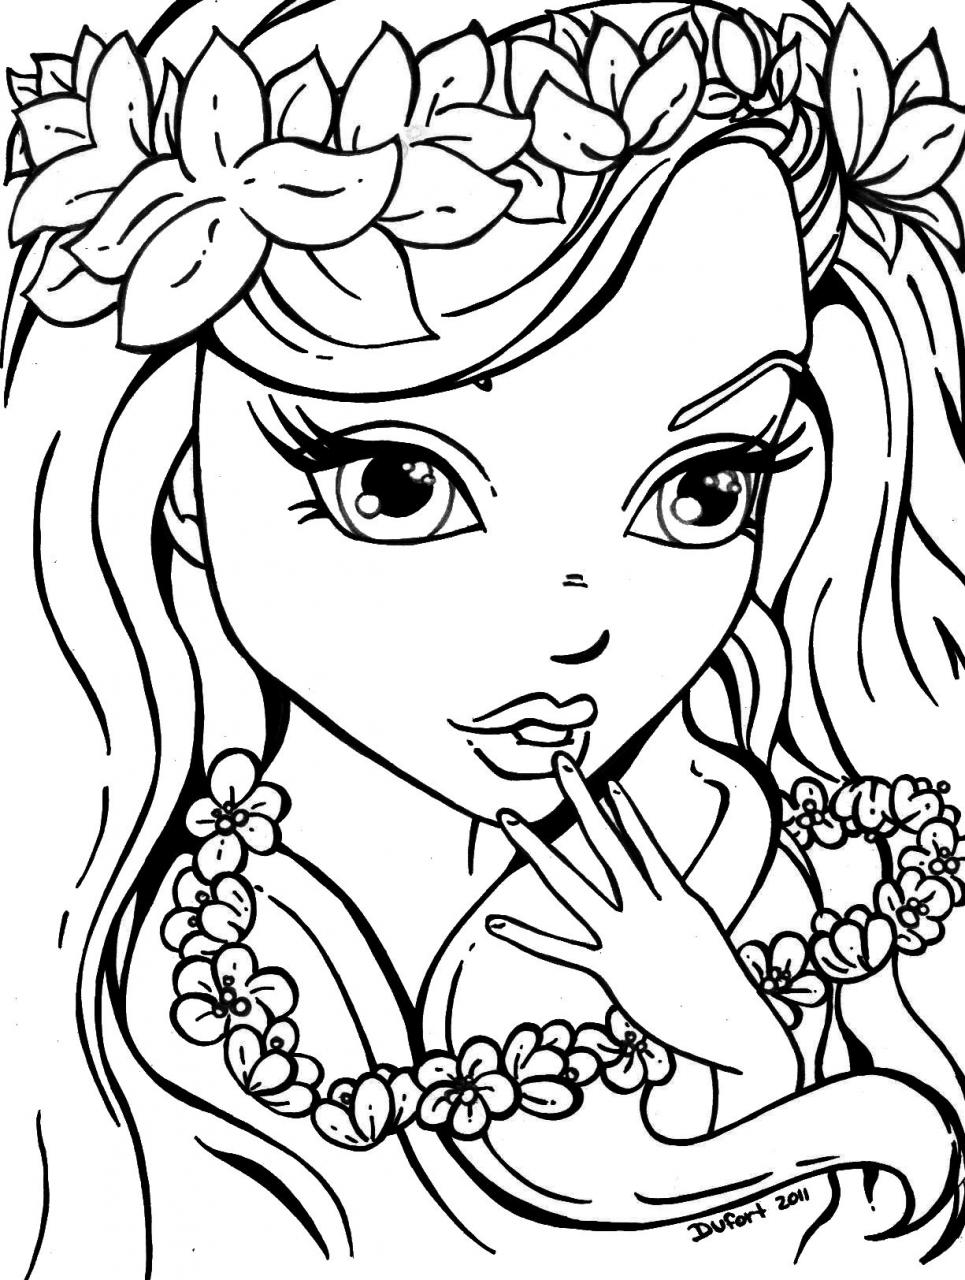 coloring prints for girls coloring pages for girls best coloring pages for kids for prints girls coloring